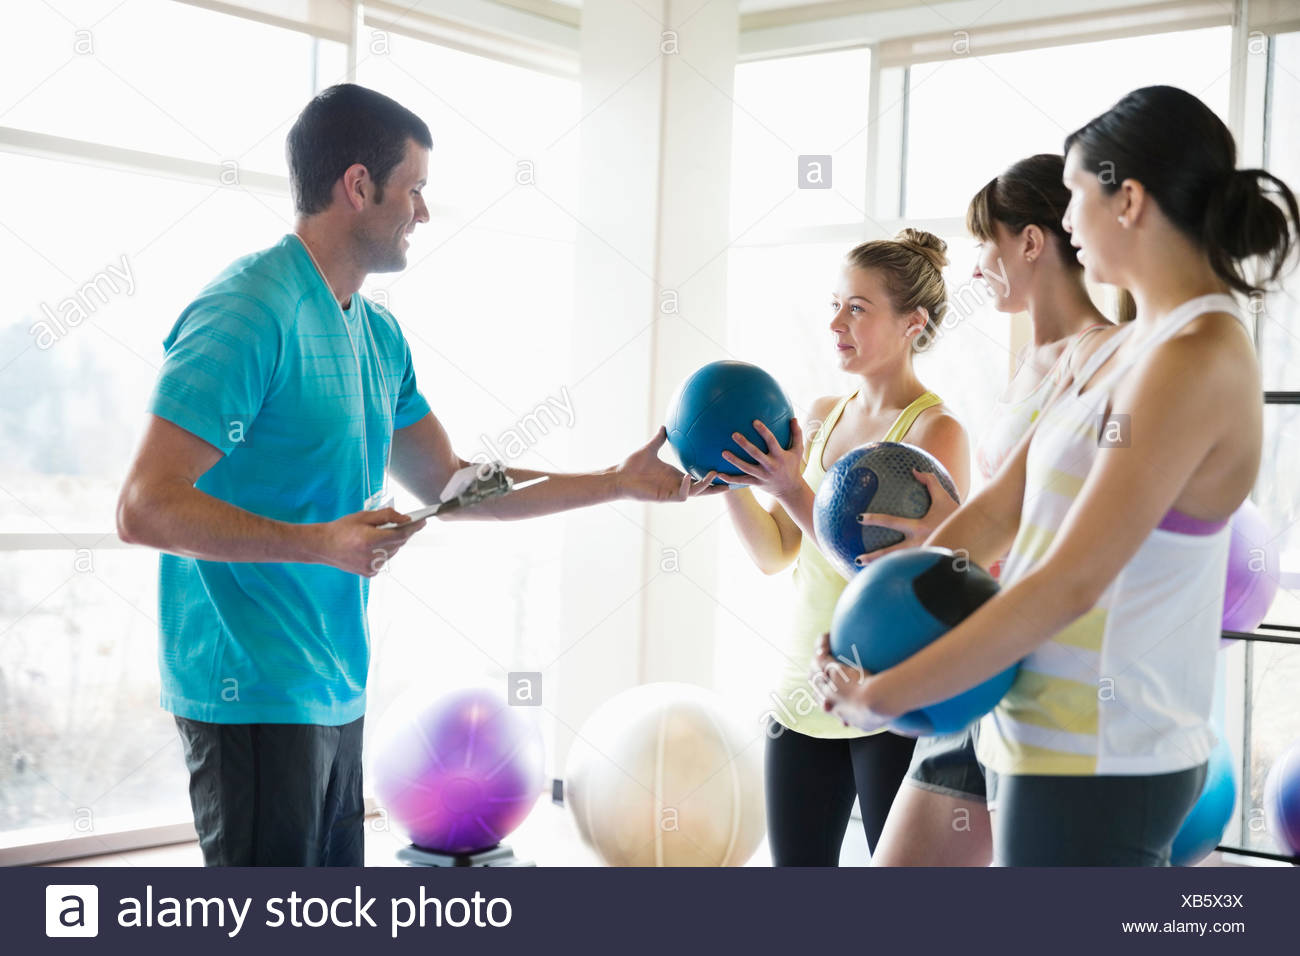 Instructor handing medicine ball to woman in fitness class - Stock Image